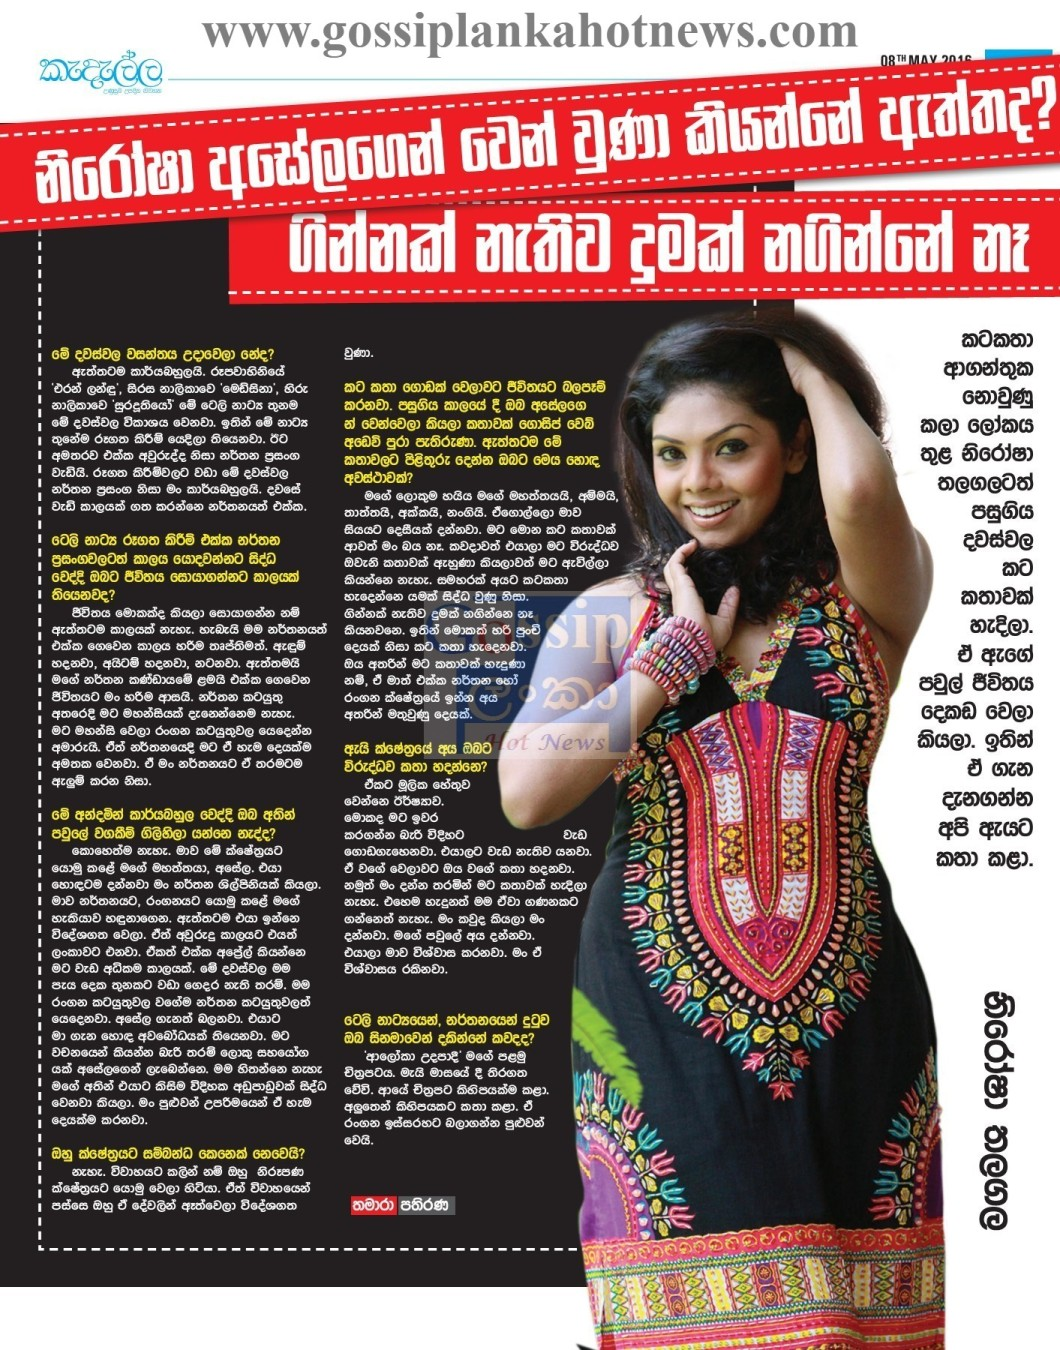 Gossip Chat with Nirosha Thalagala - Gossip Lanka News